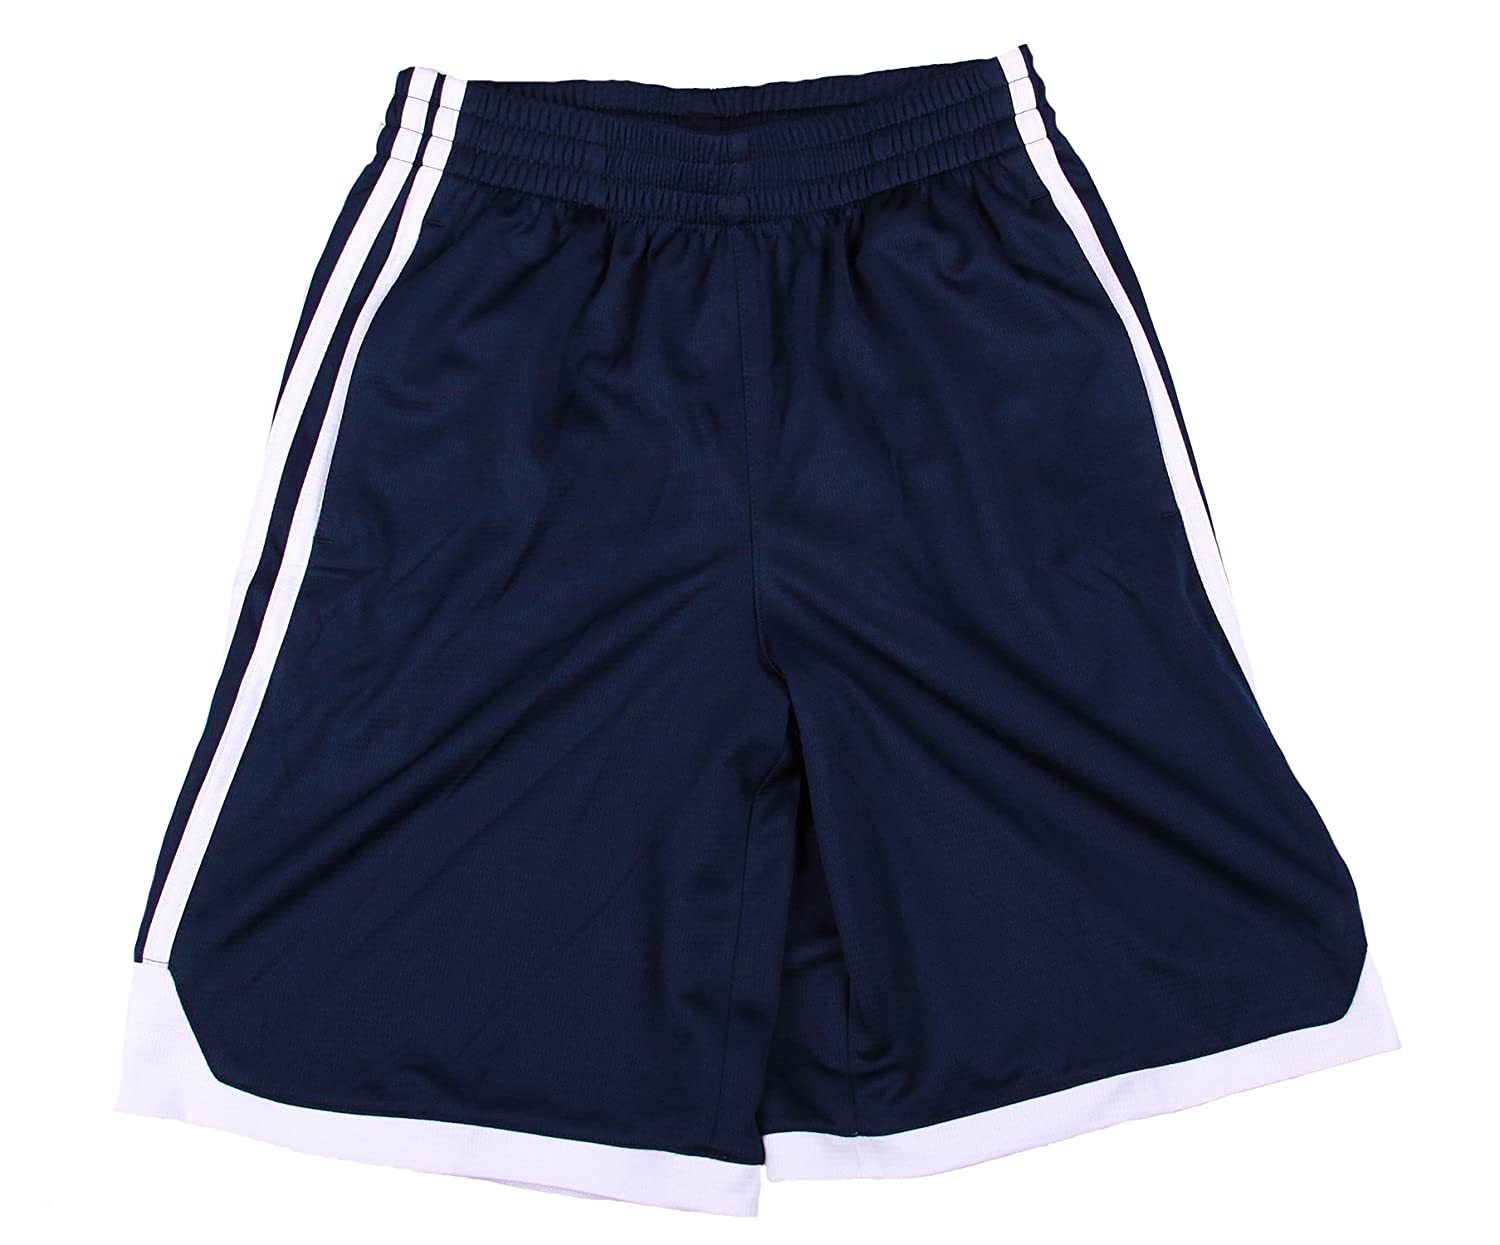 Adidas Boys Athletic Basketball Shorts